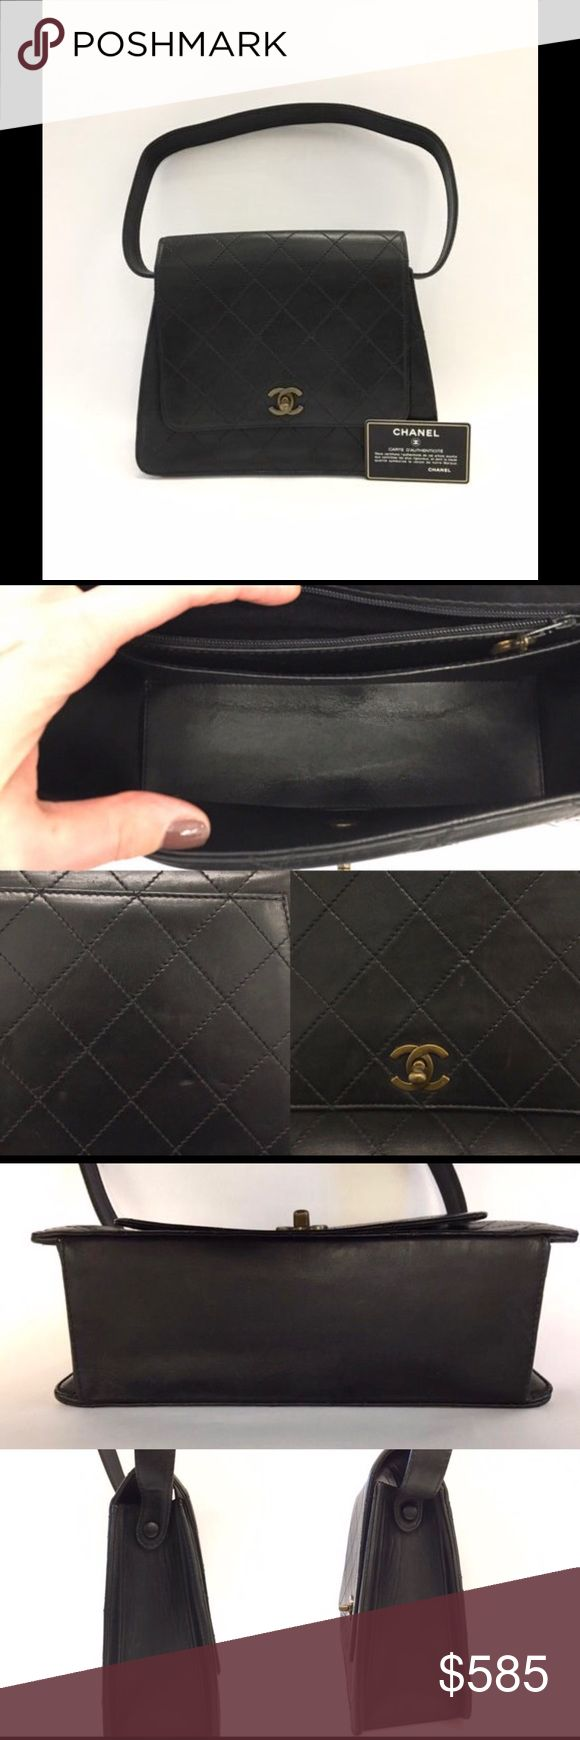 """Authentic Chanel Quilted Shoulder Bag With CC Lock All prices are final! No trading. Rare authentic Chanel black quilted lambskin shoulder bag with classic CC turn lock. Serial number: 5055443   Material: lambskin leather, leather lining, zip pocket has fabric lining. Measurements: L 10"""" x H 8"""" x D 3.3"""" Shoulder strap: 25"""" Good pre owned condition  Outside: wrinkles, scuff marks, scratches, dent on outside pocket. Strap has wrinkles and creases.  Inside: lining has scuff marks, scratches…"""